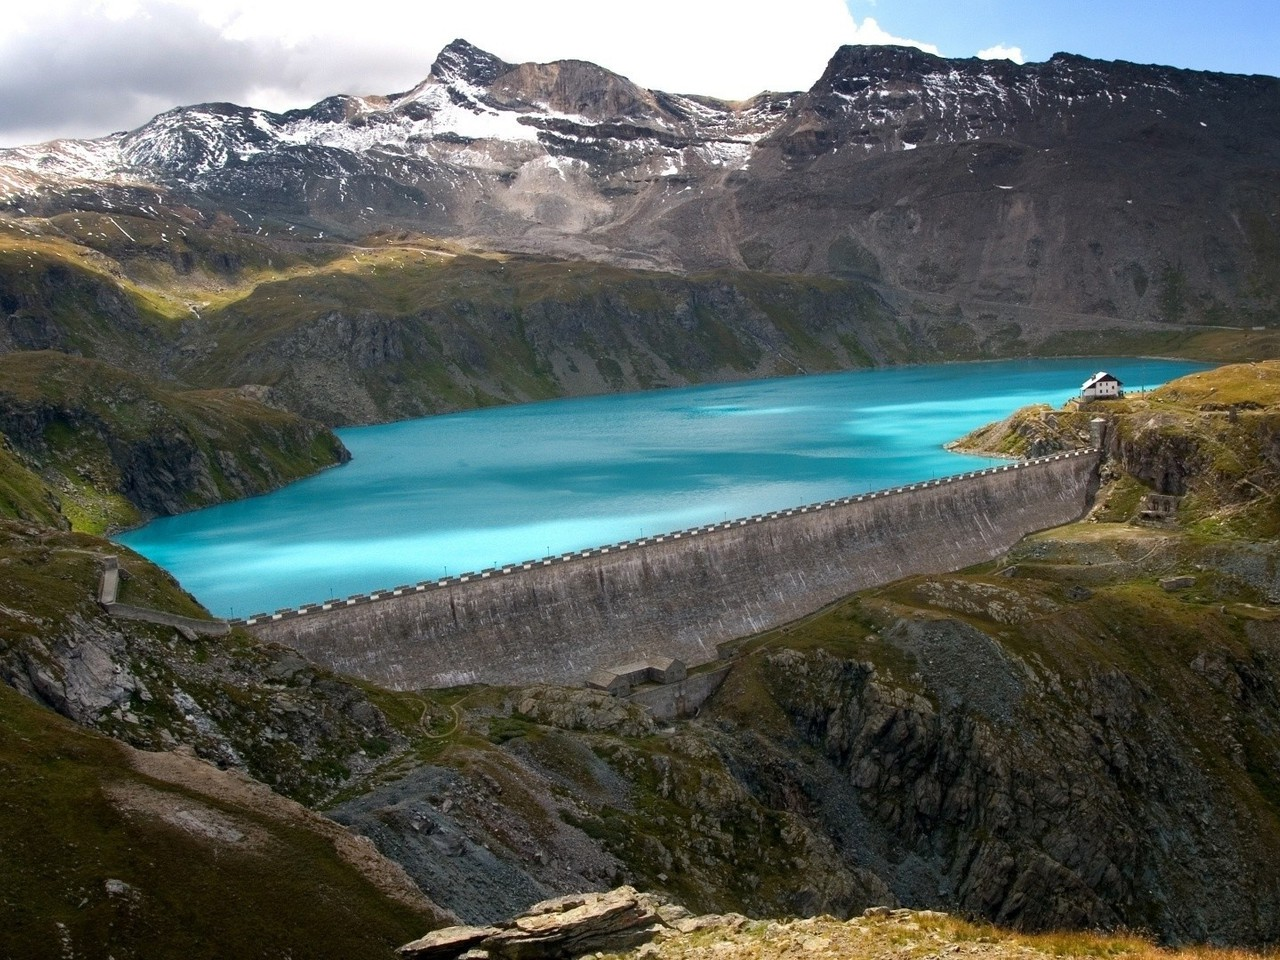 Best Hd Wallpapers For Mobile Screen Beautiful Dam In The Mountains Wallpaper Allwallpaper In